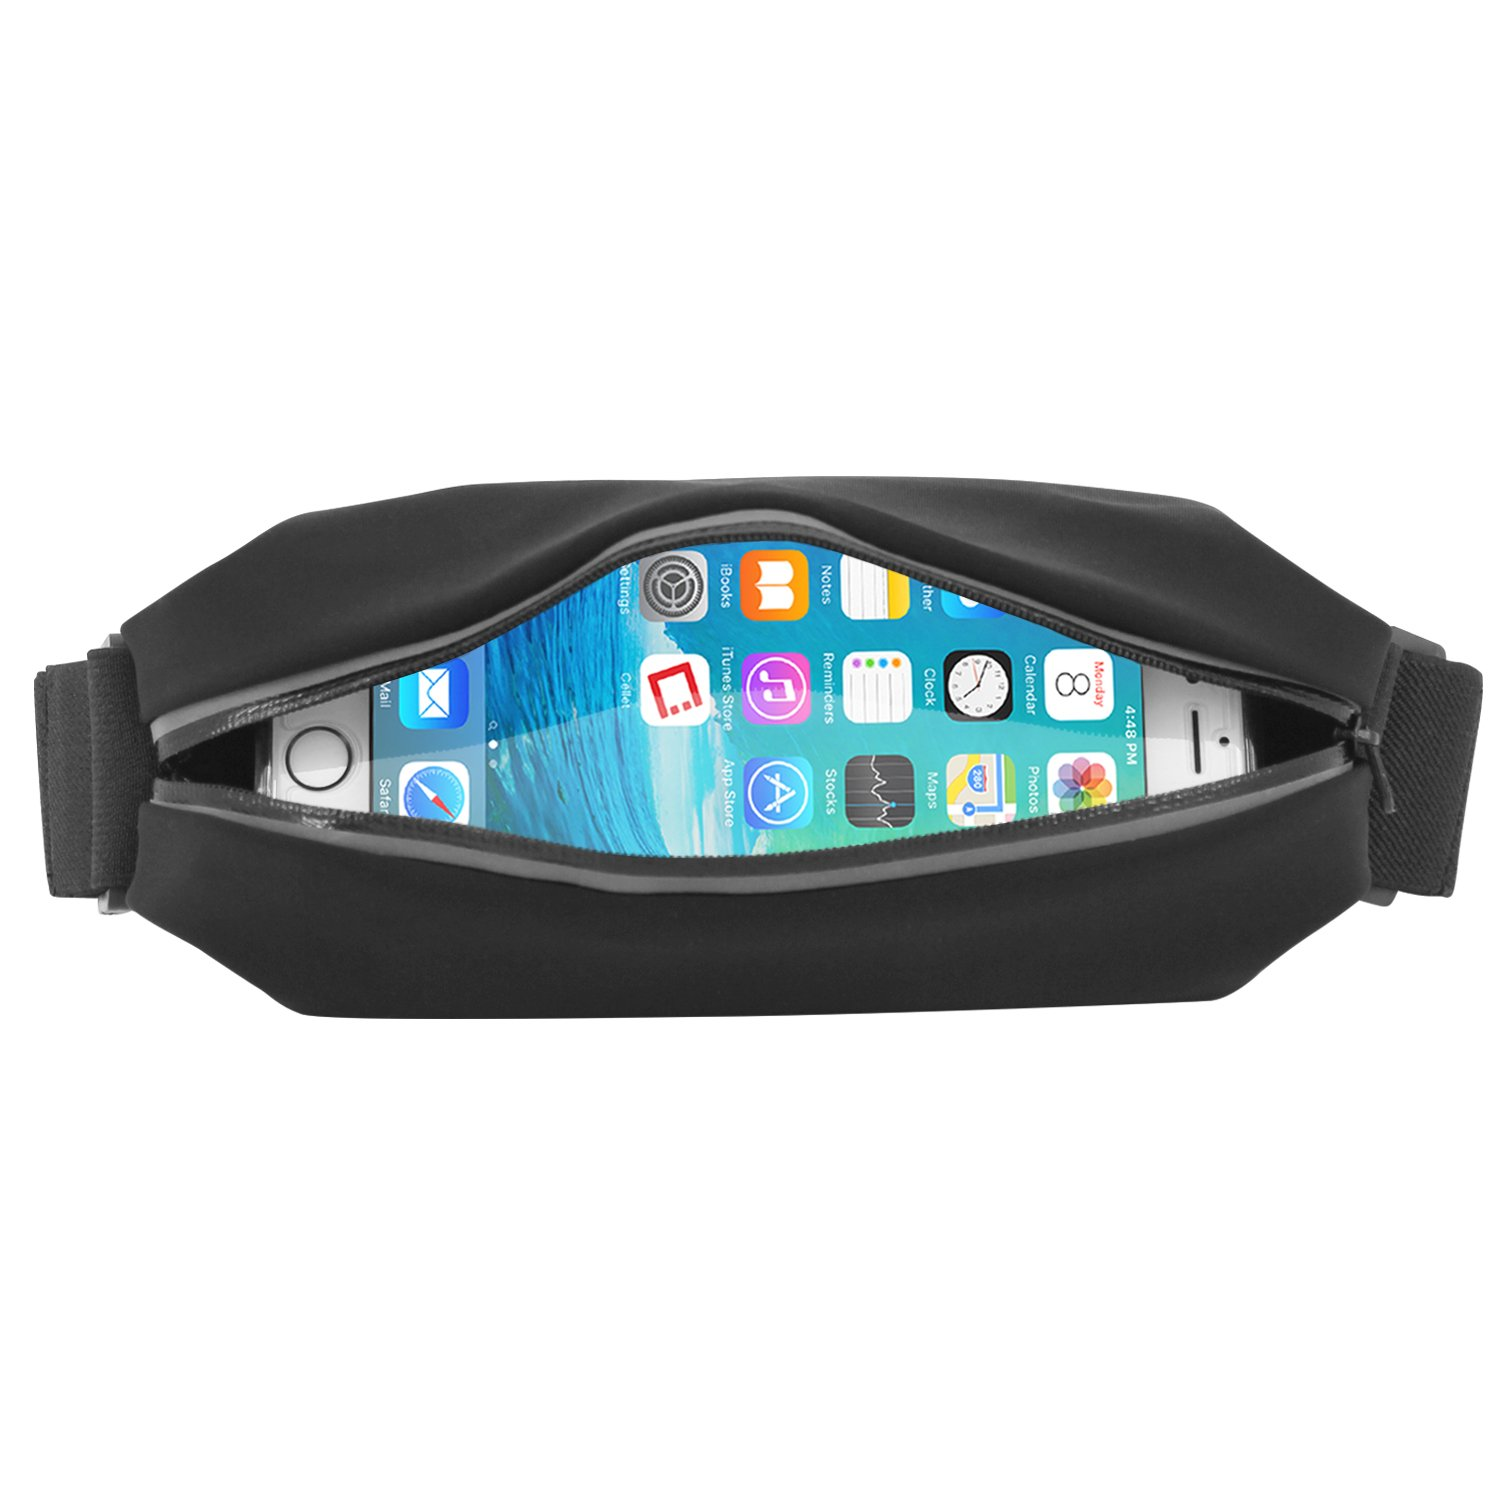 Cellet Cellphone Sweat Resistant Sports Armband, Storage Belt Armband Case for iPhone 6s, 6 Plus, 7, 7 Plus, 8, 8 Plus, X, Samsung S7, S8 Edge, Note 4, 5, 7, 8 and Other Smartphones by Cellet (Image #6)